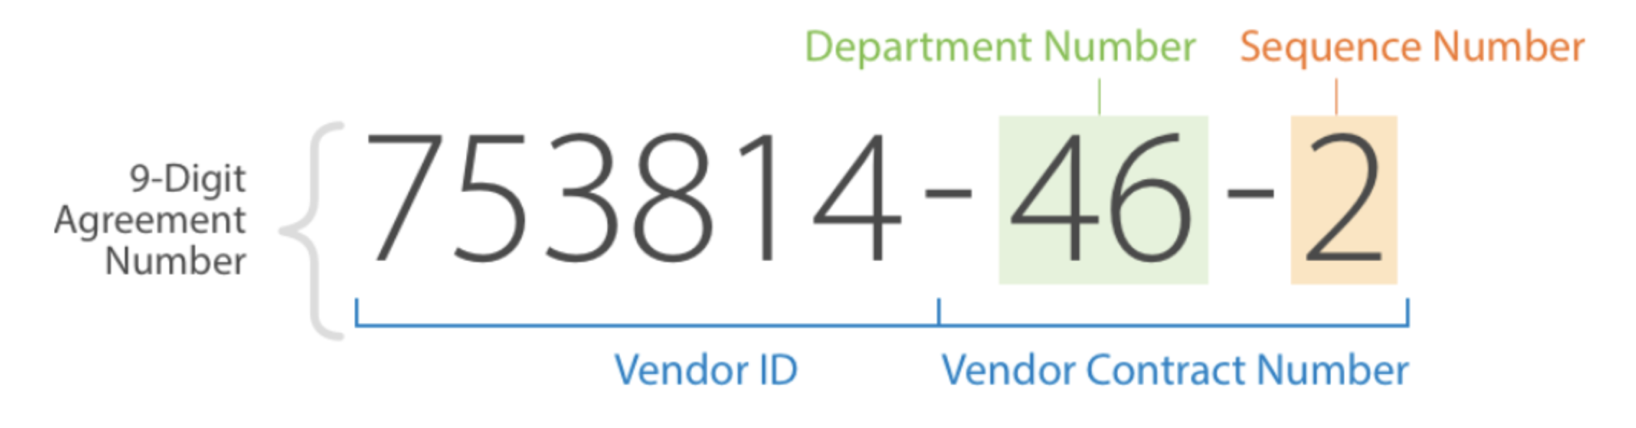 b5eb5a034e The last 3 digits of the vendor unique 9-digit ID (also known as the  Supplier Agreement Number).